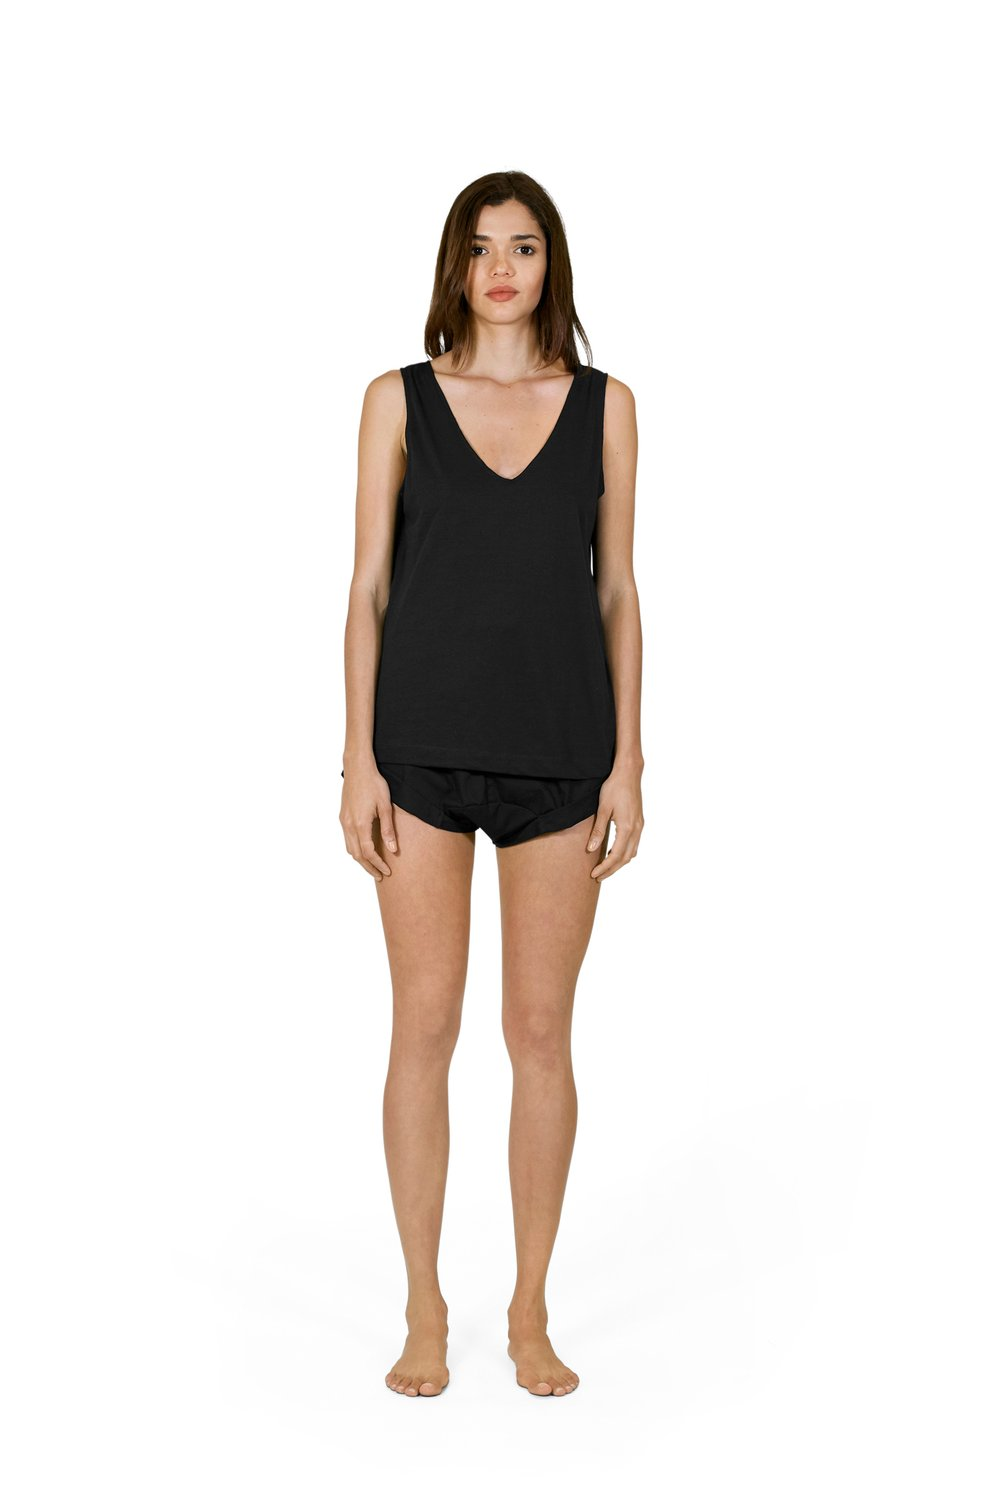 Buy Sanbasics V Singlet | Buy Sanbasics Fashion Online